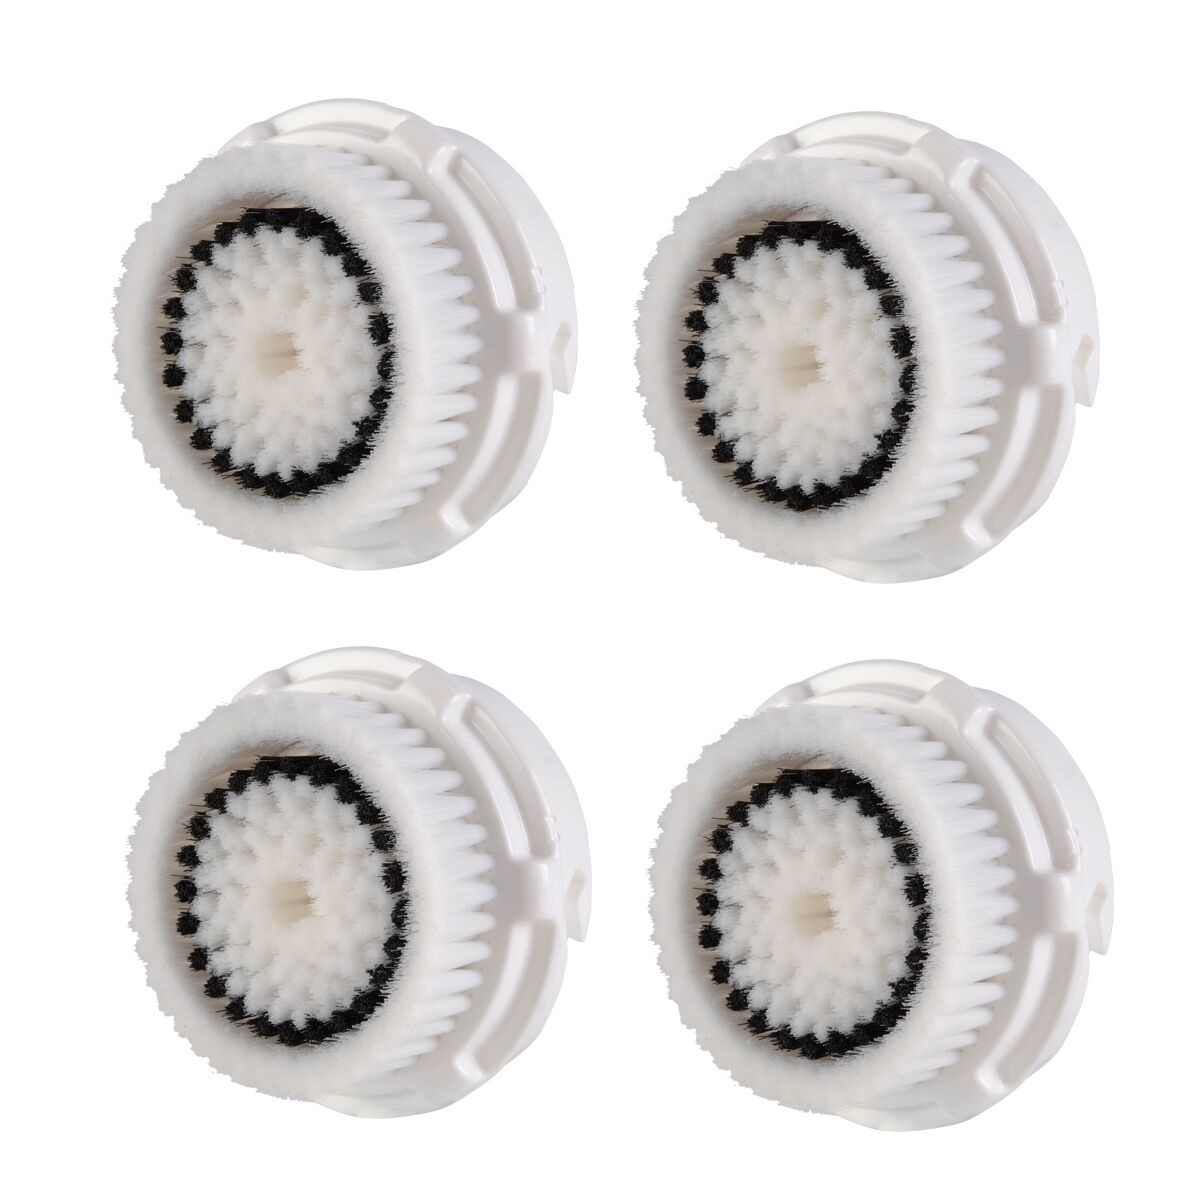 PURSONIC FBHD4 DELICATE 4PK REPLACEMENT HEADS FOR